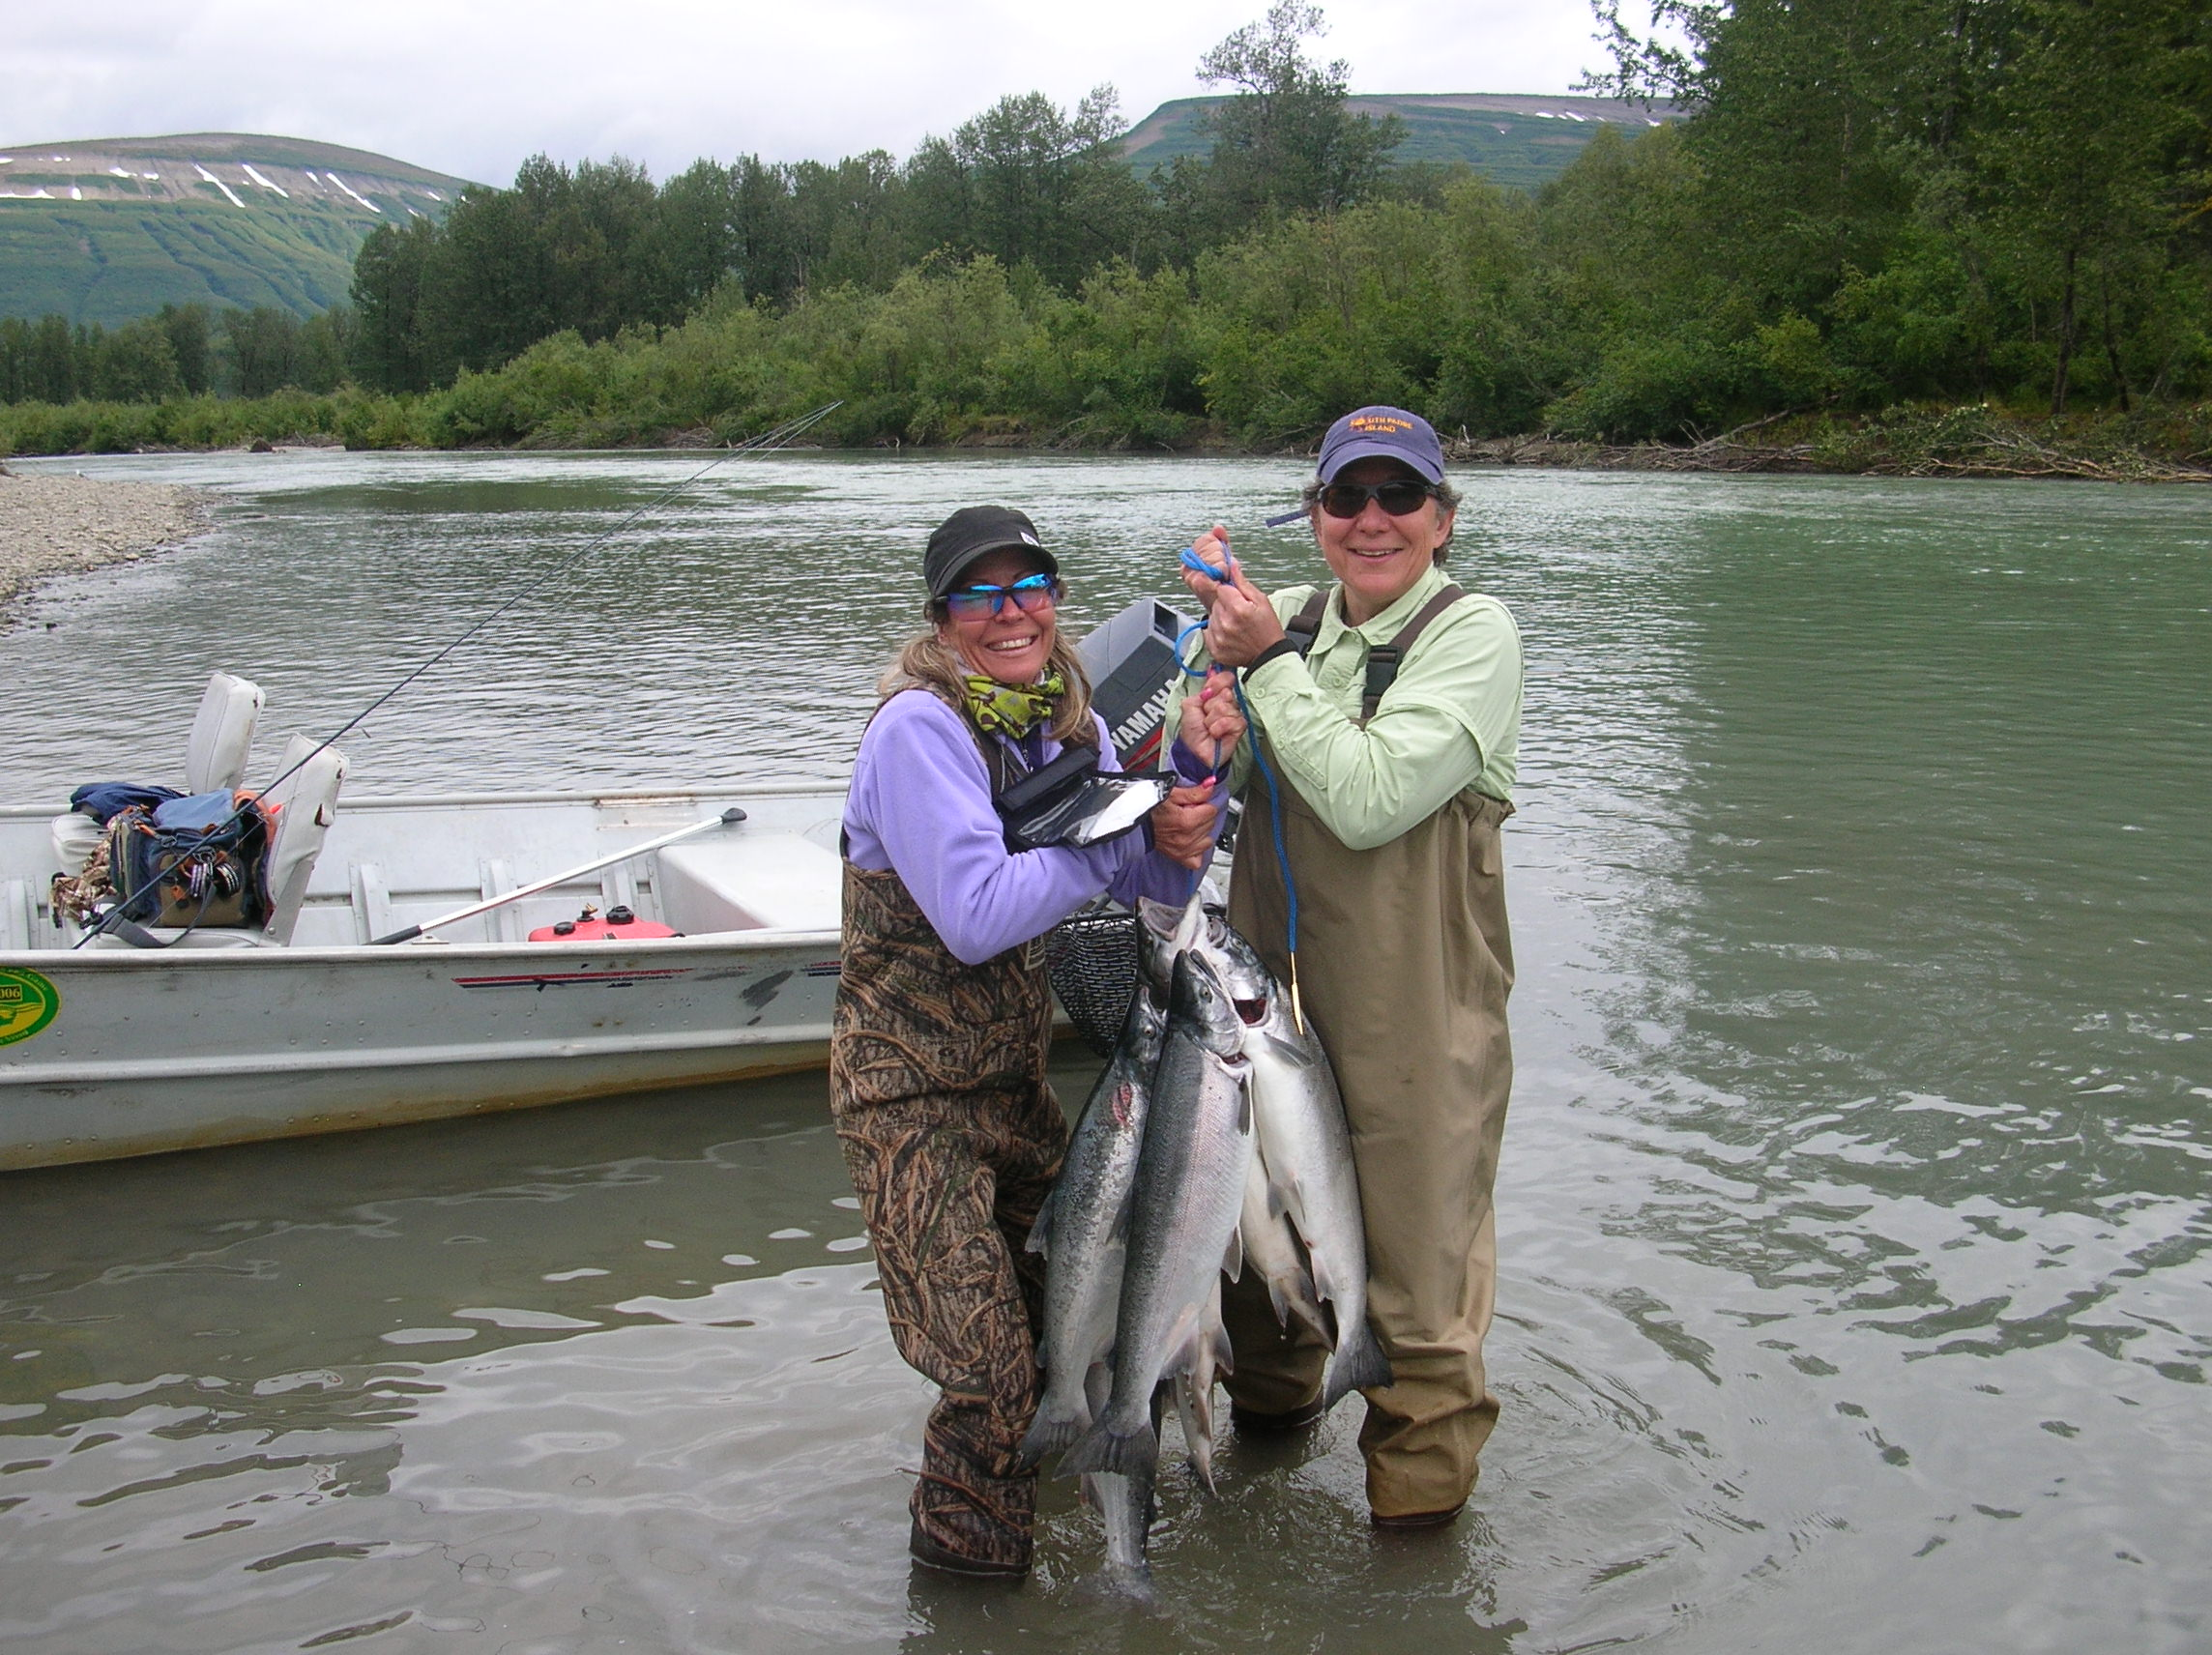 Alaska fly fishing rainbow point lodge fly fishing lodge for Alaskan salmon fishing